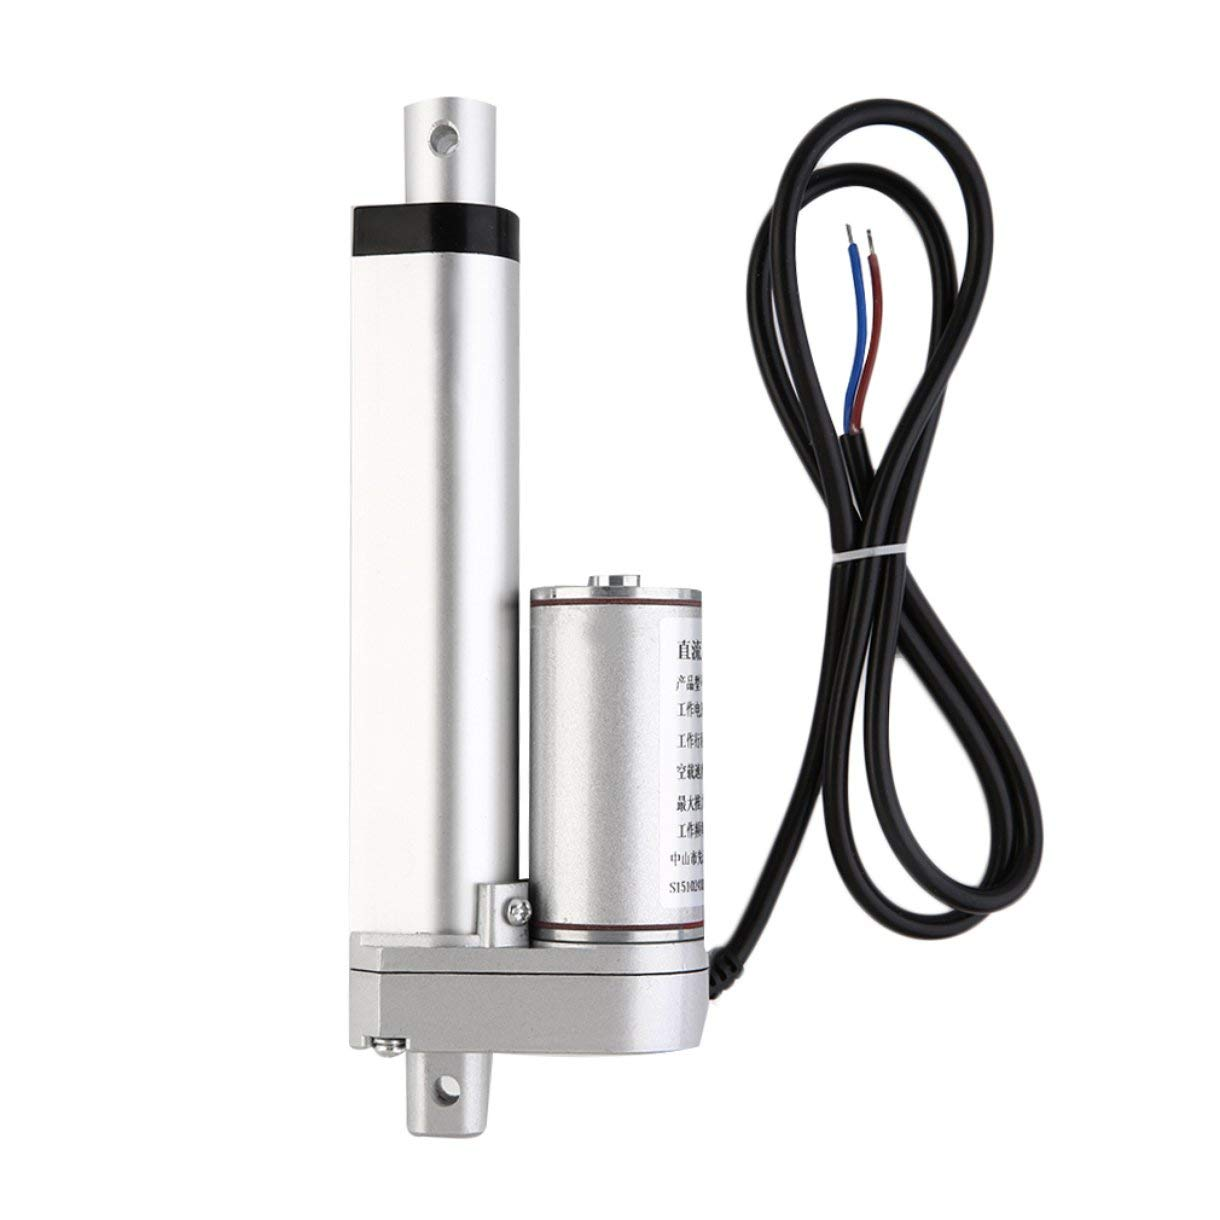 Linear Actuator Motor, Multifunctional 12V DC Linear Actuator Motor 100mm 500N Stroke Heavy Duty Motor Electric Telescopic Rod, for Electroic, Medical, Auto Use